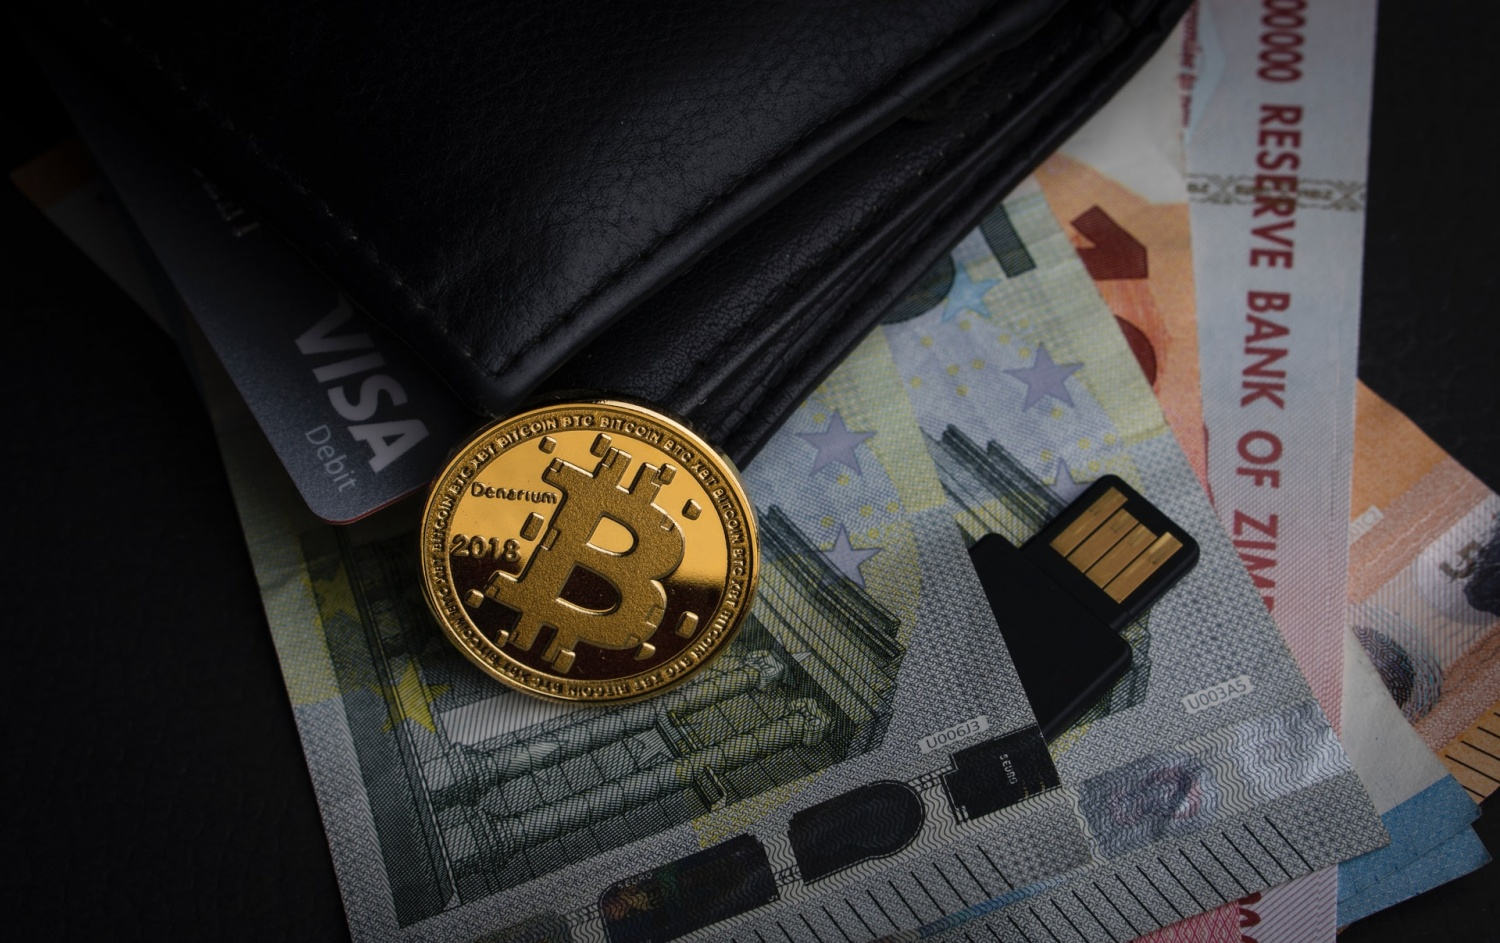 4 Alleged Men Behind Cryptocurrency Investment Scheme 'Oz Project' Now  Arrested in Japan   Tech Times